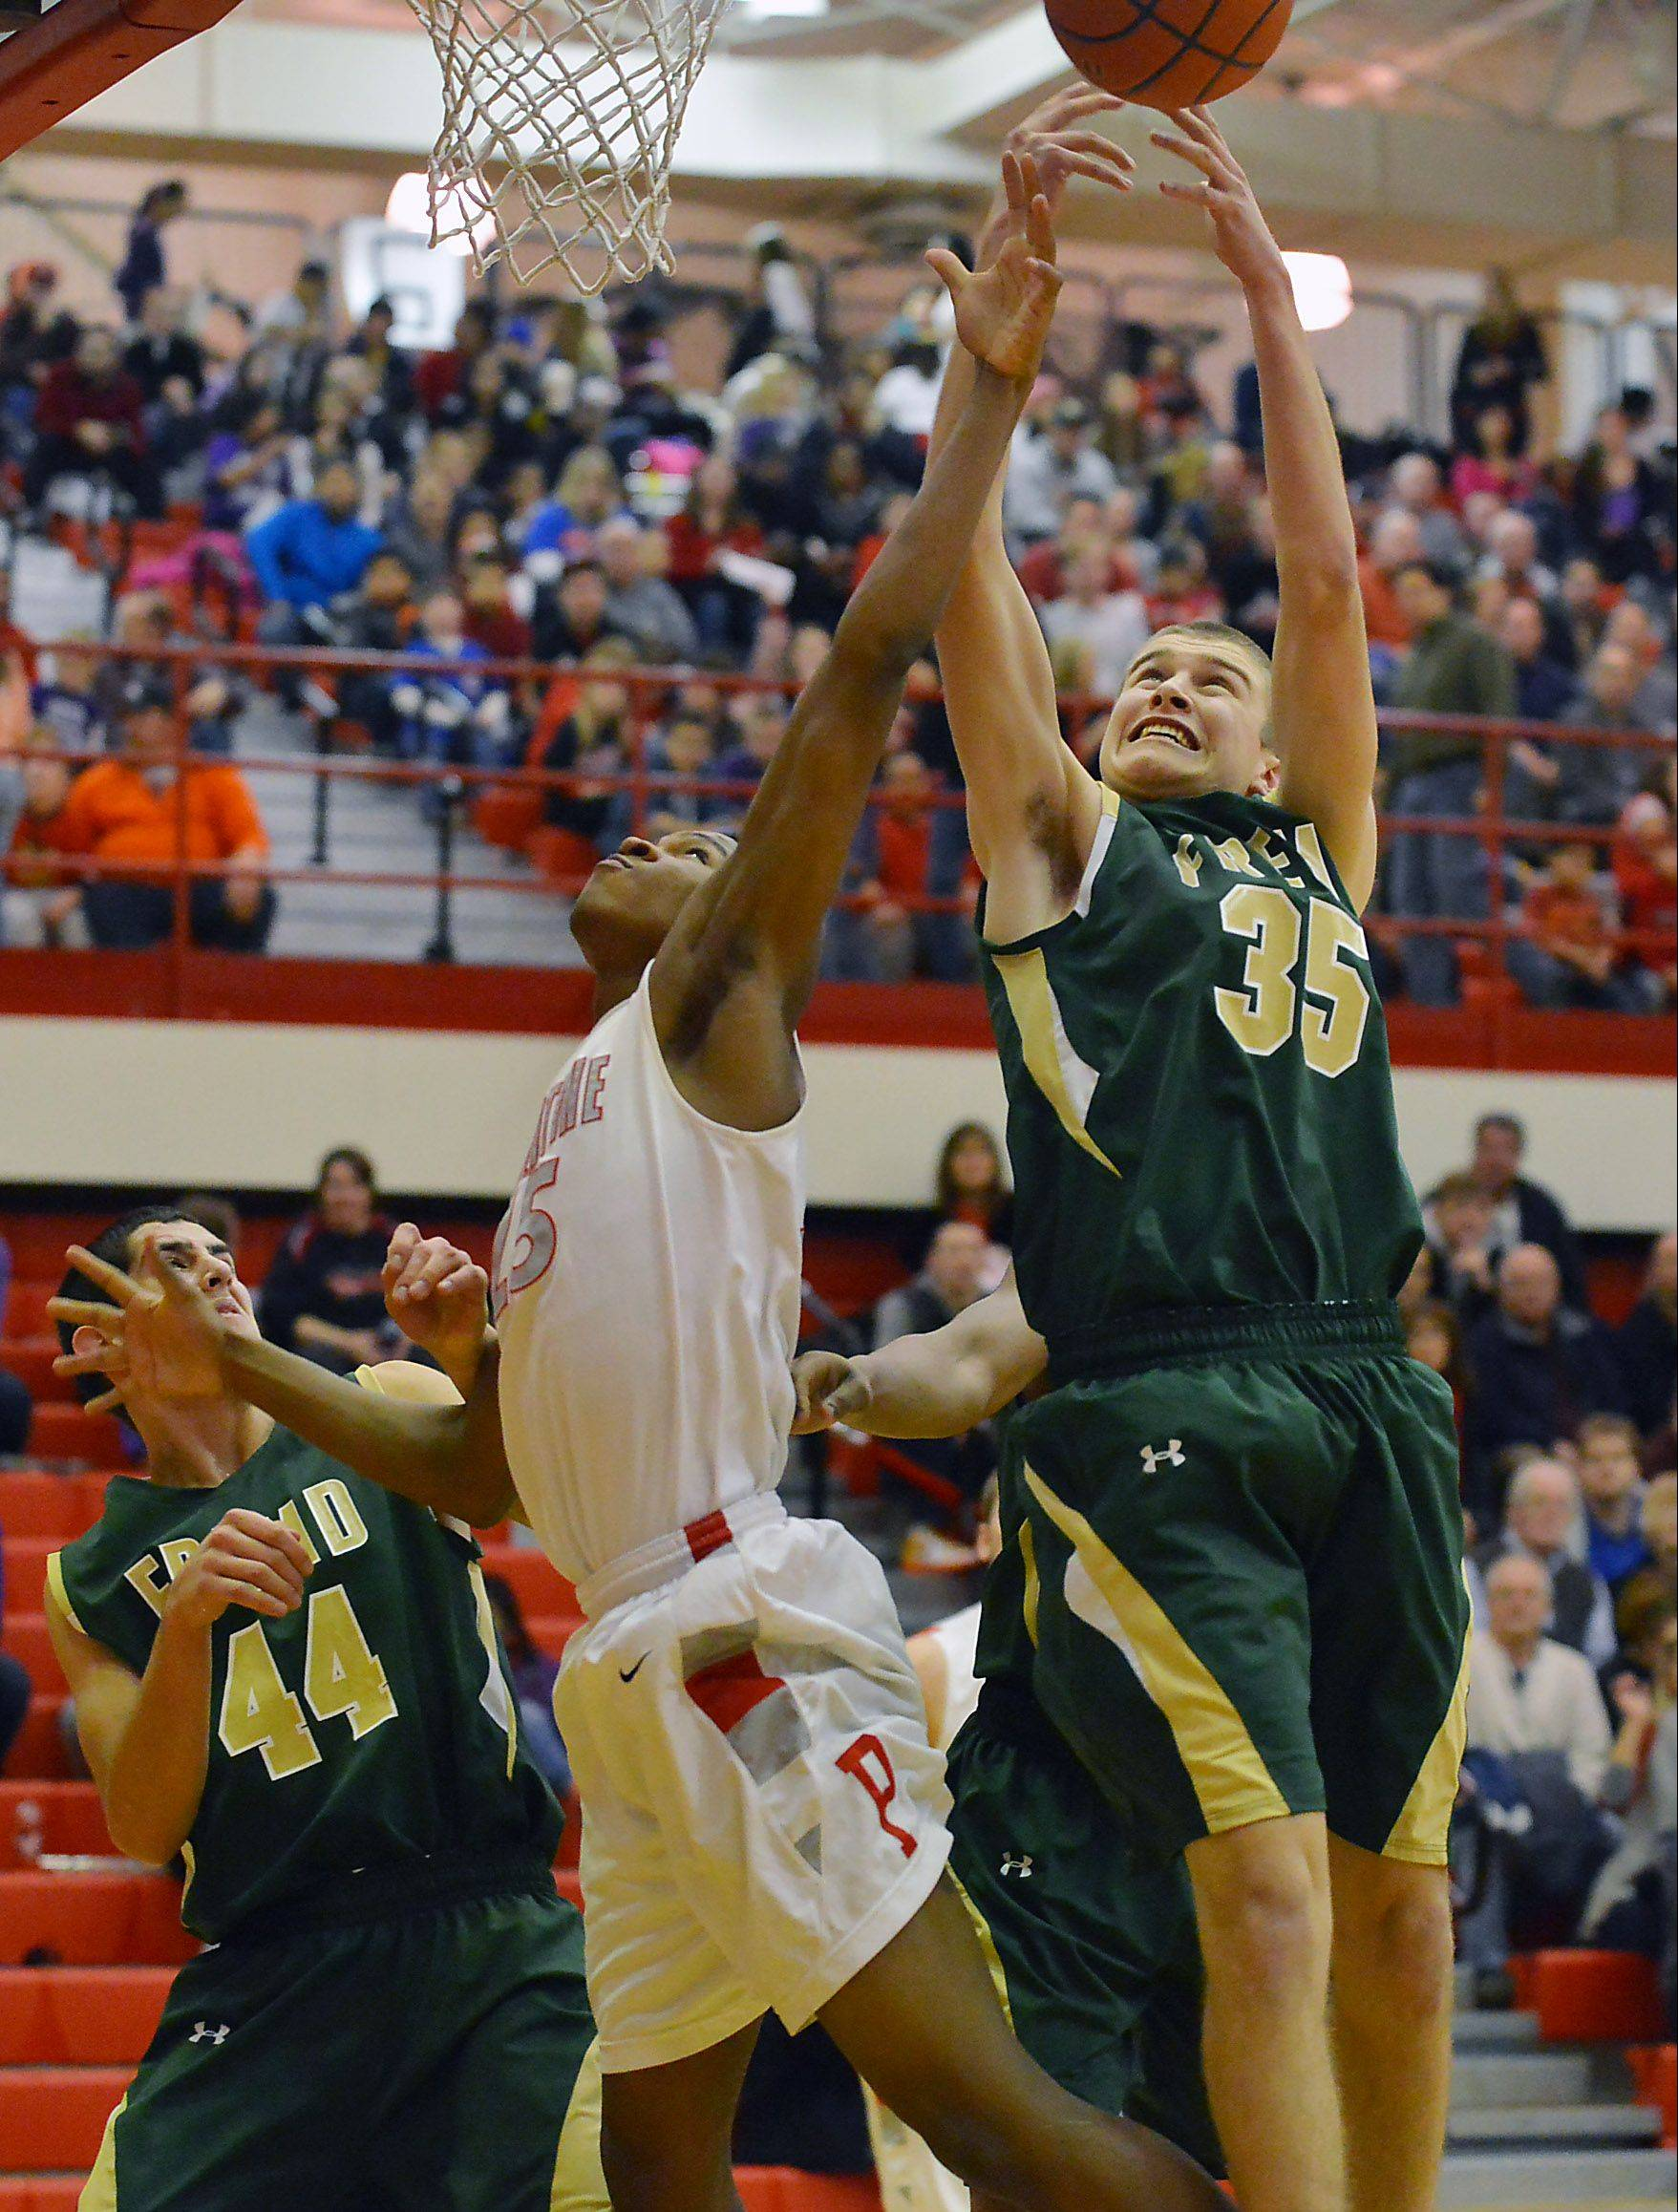 Palatine plays it Smart to stun Fremd